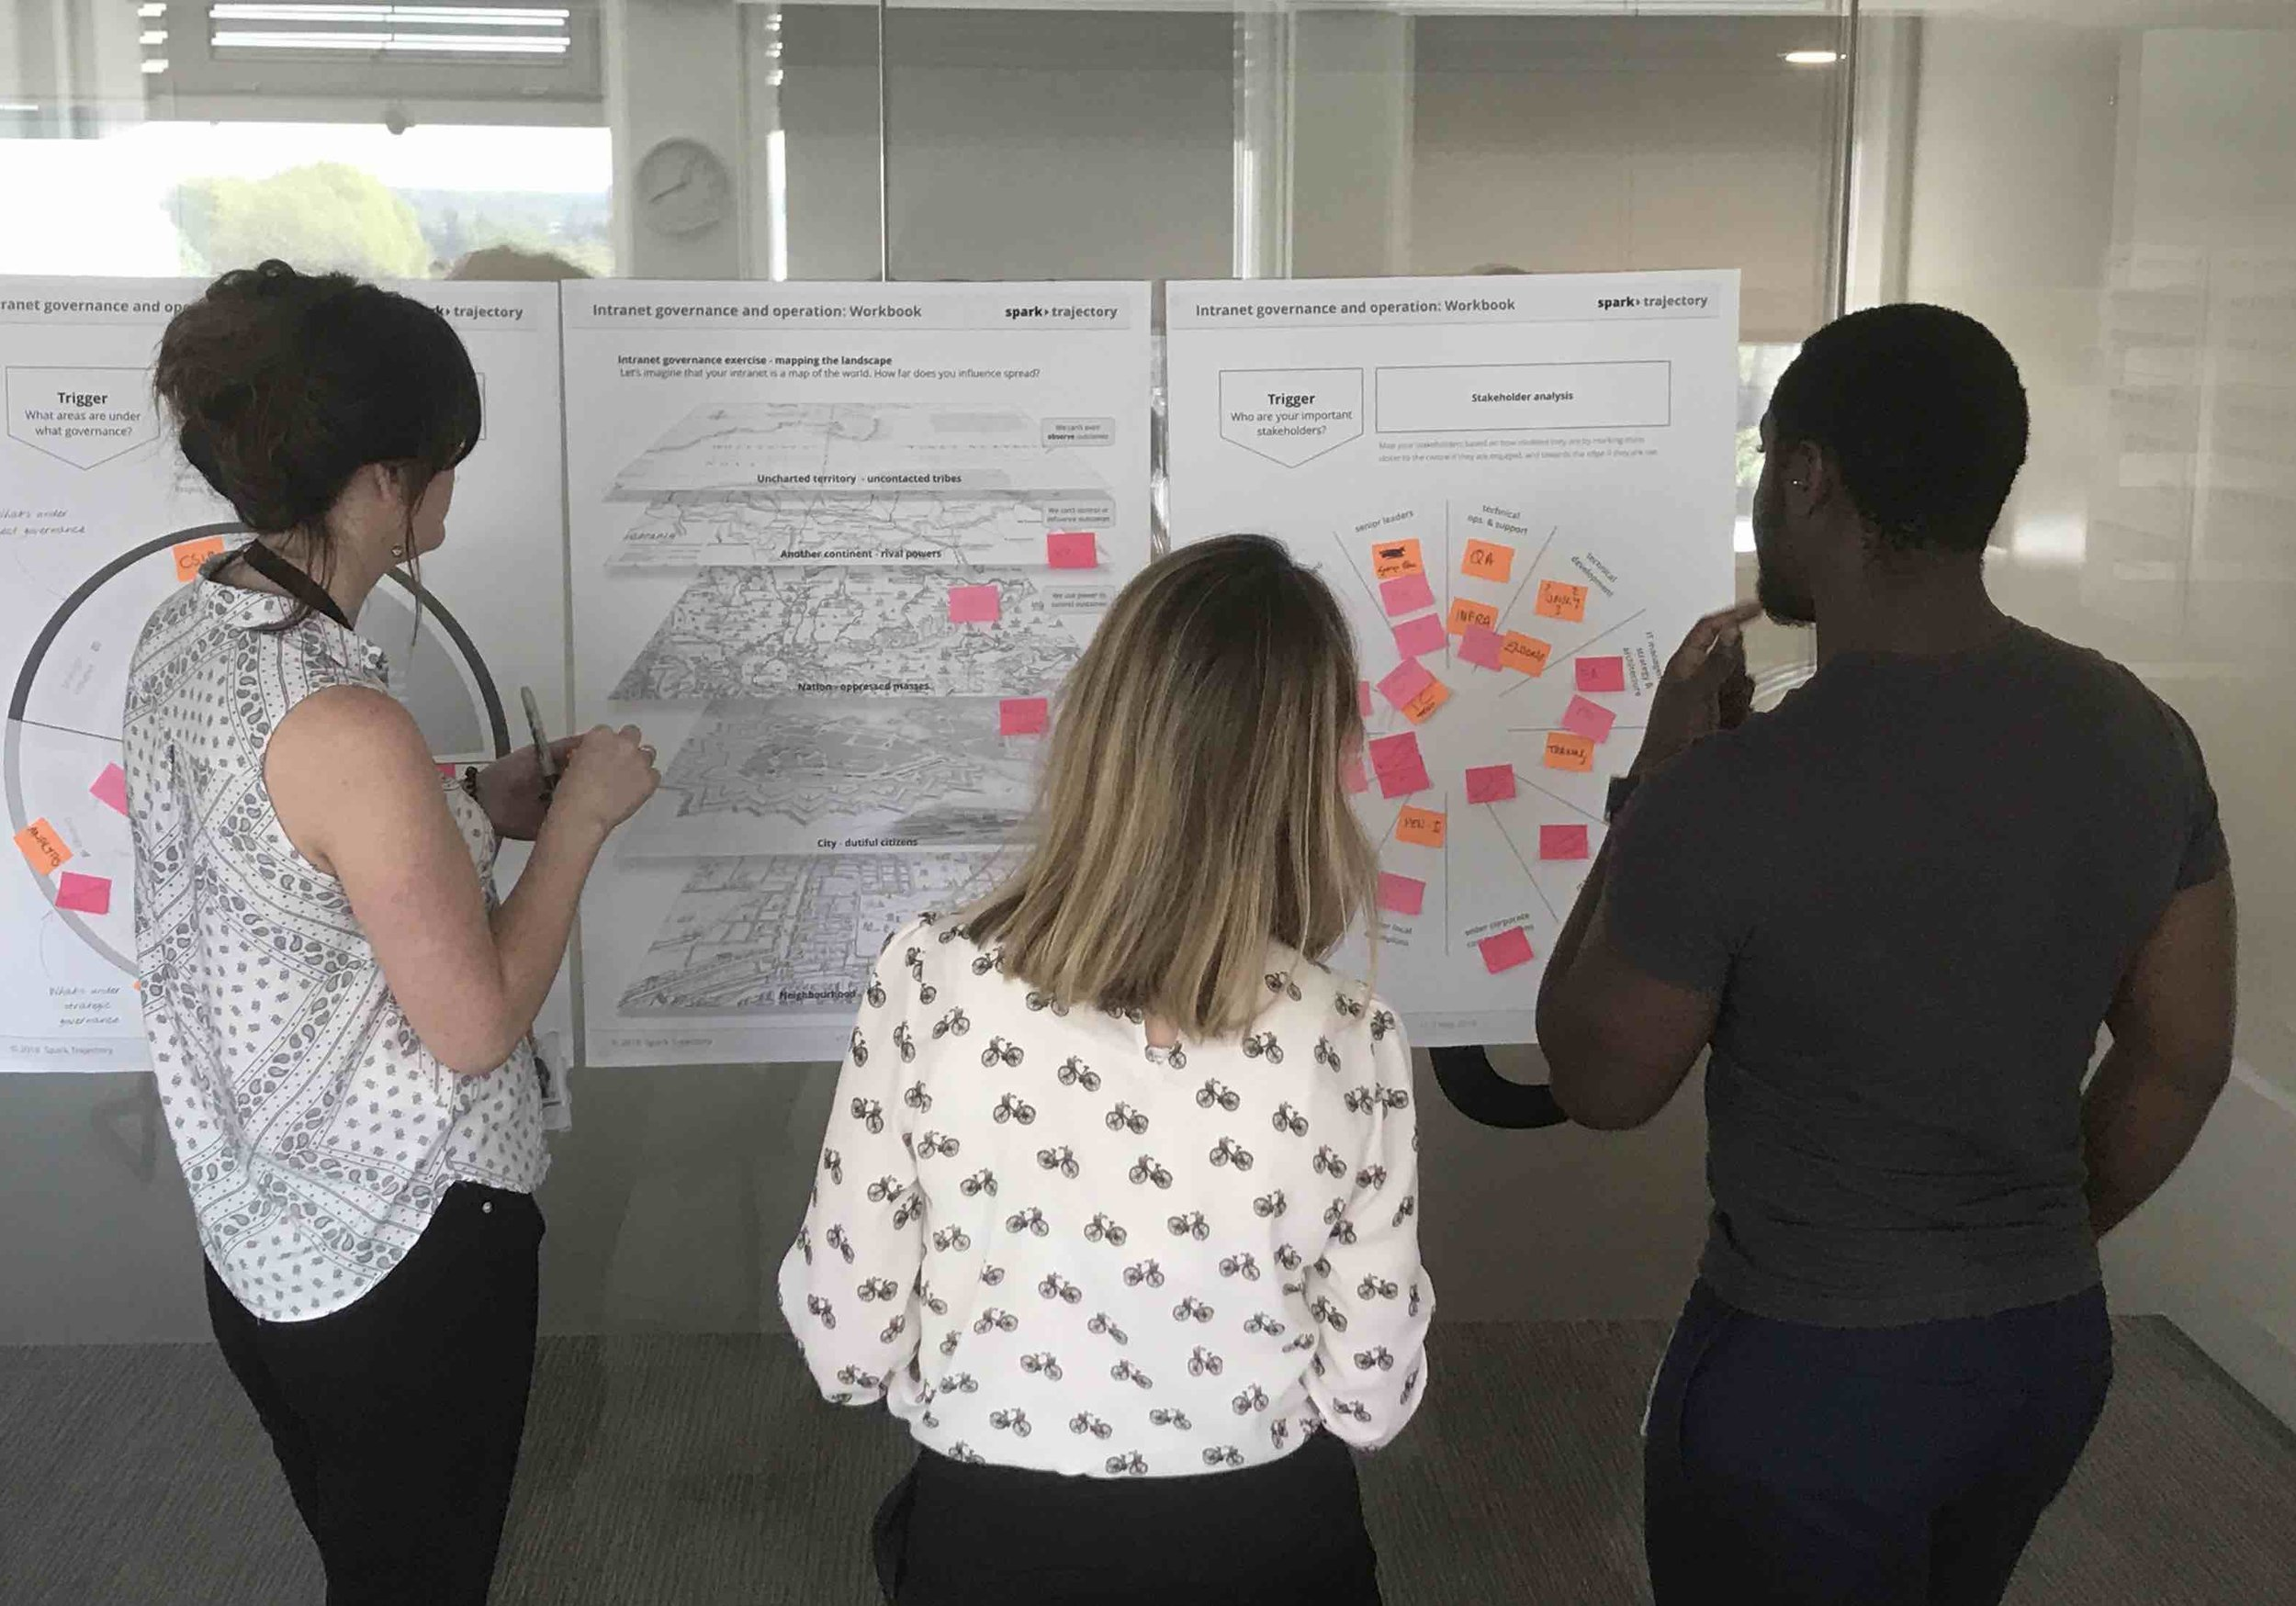 Teams work together on intranet management techniques by working on their real-world intranet challenges